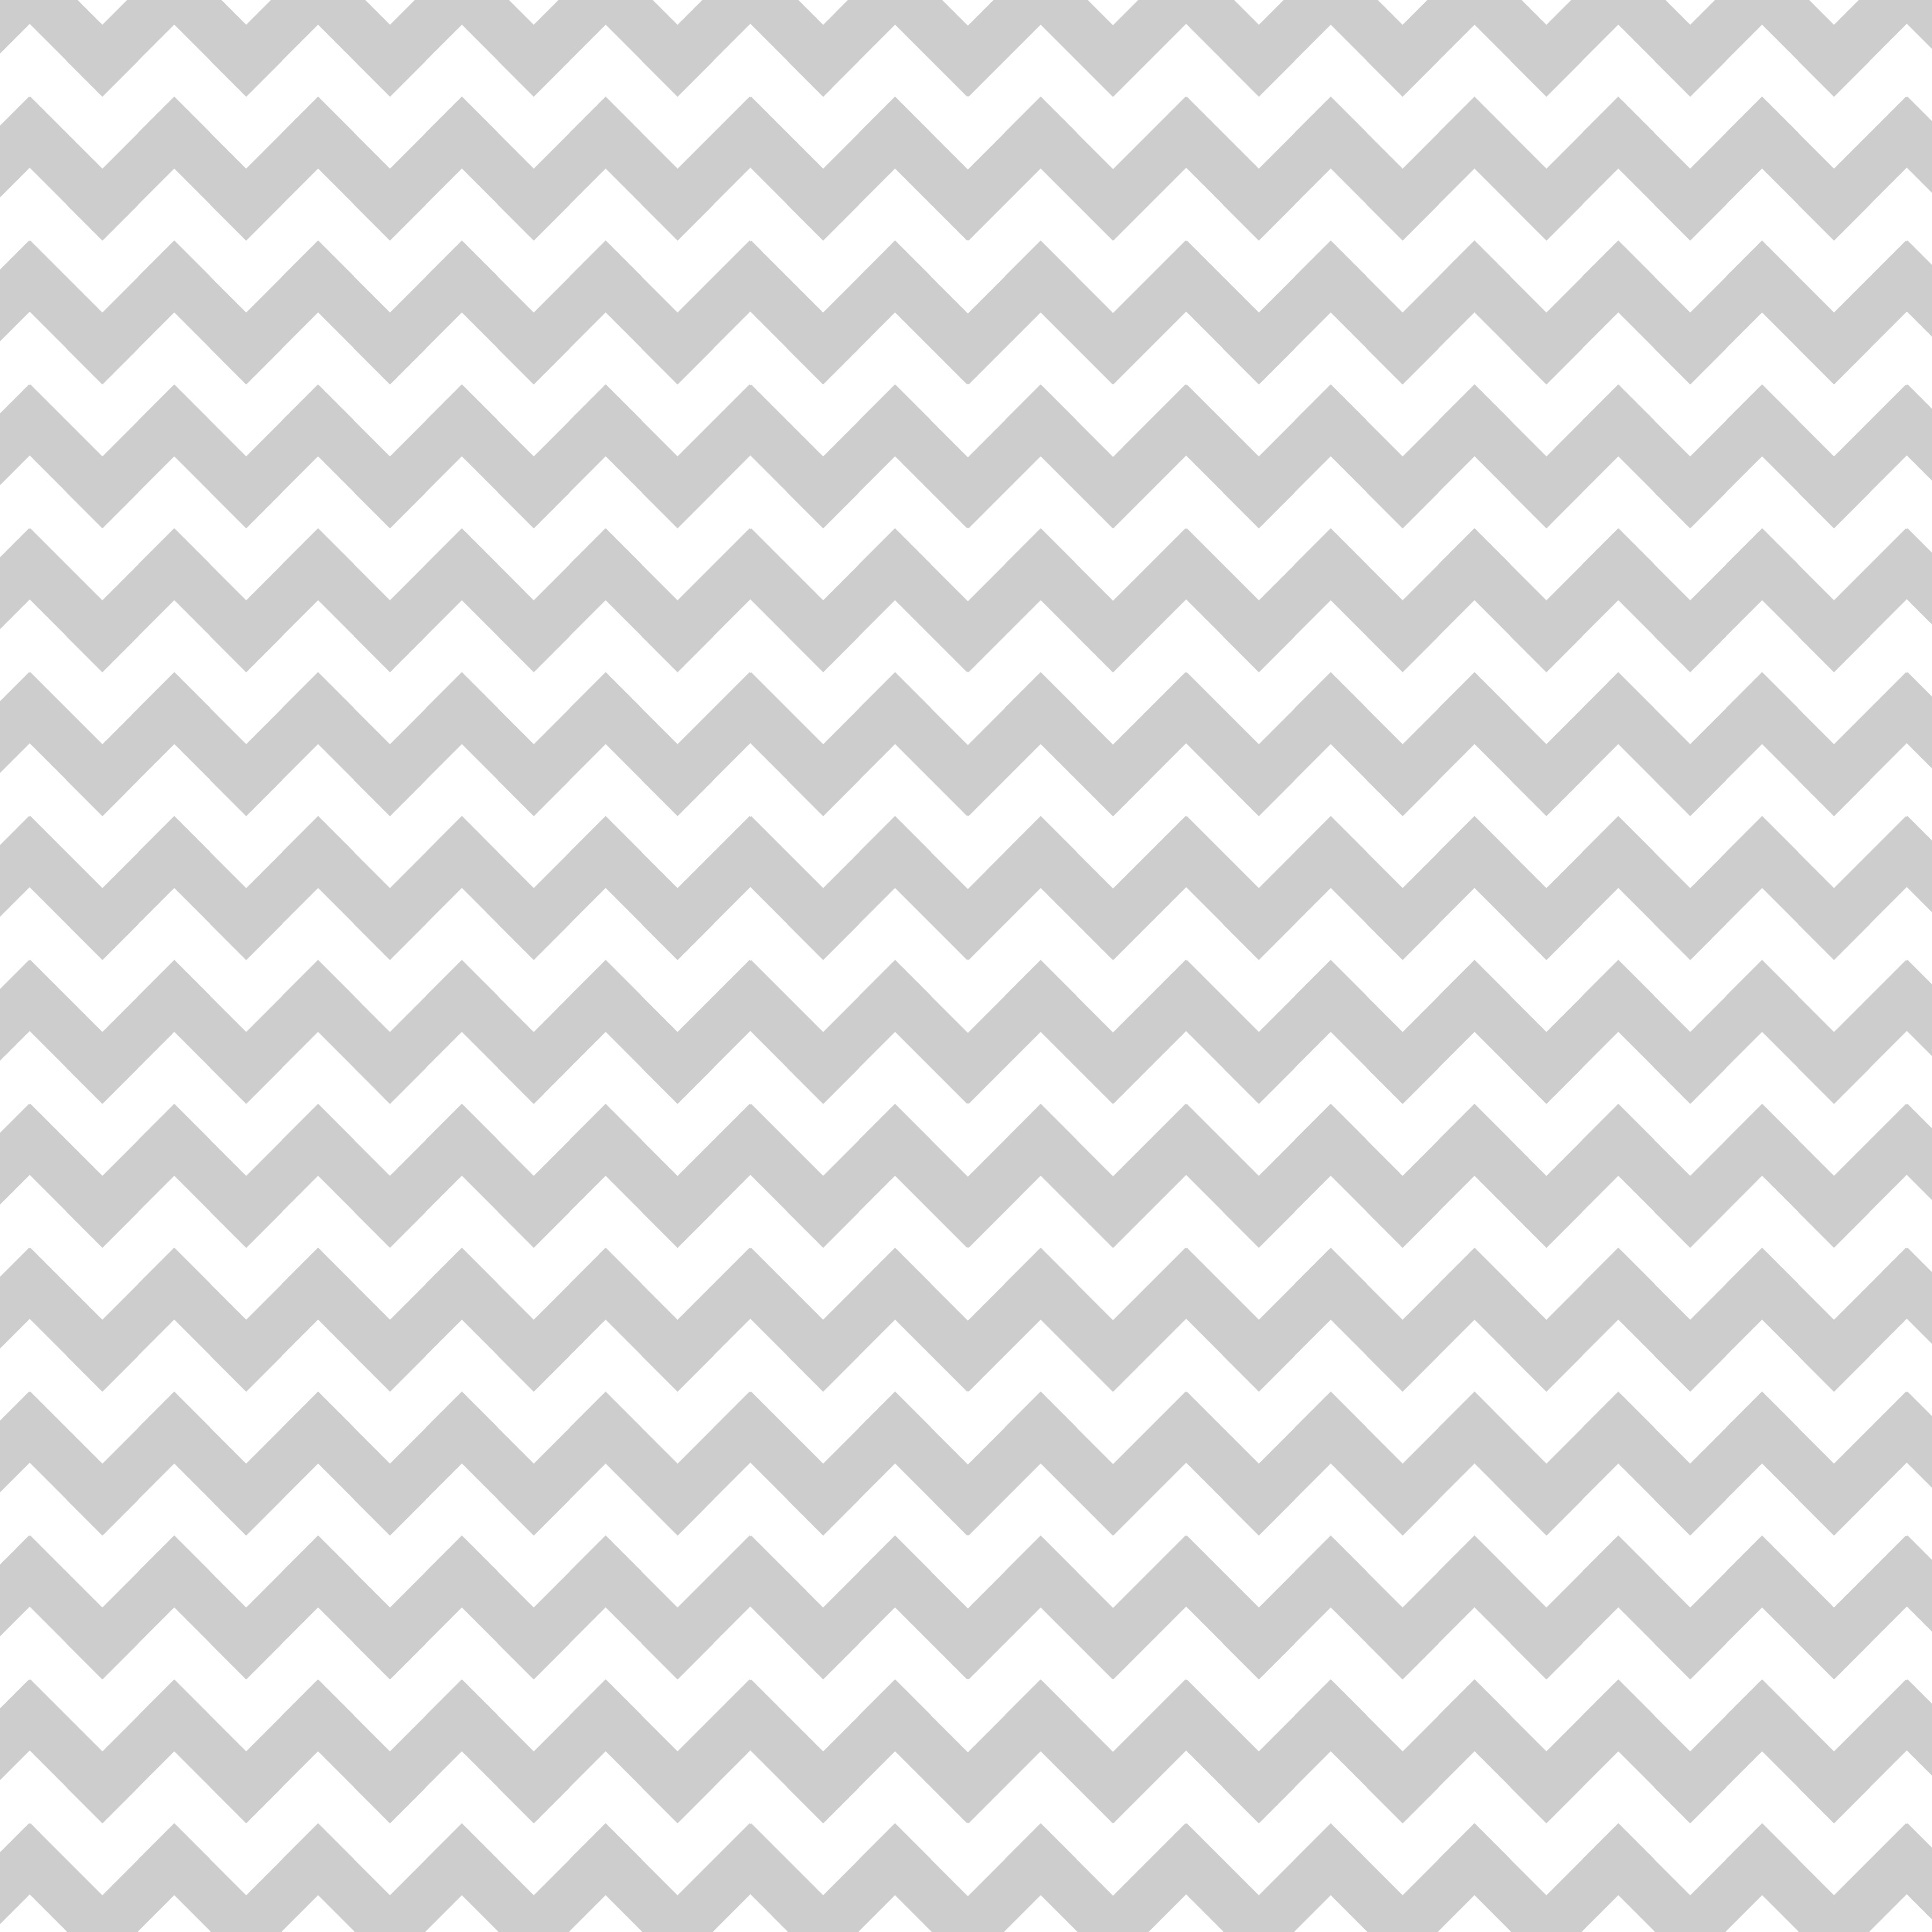 Grey and White Chevron 3600x3600